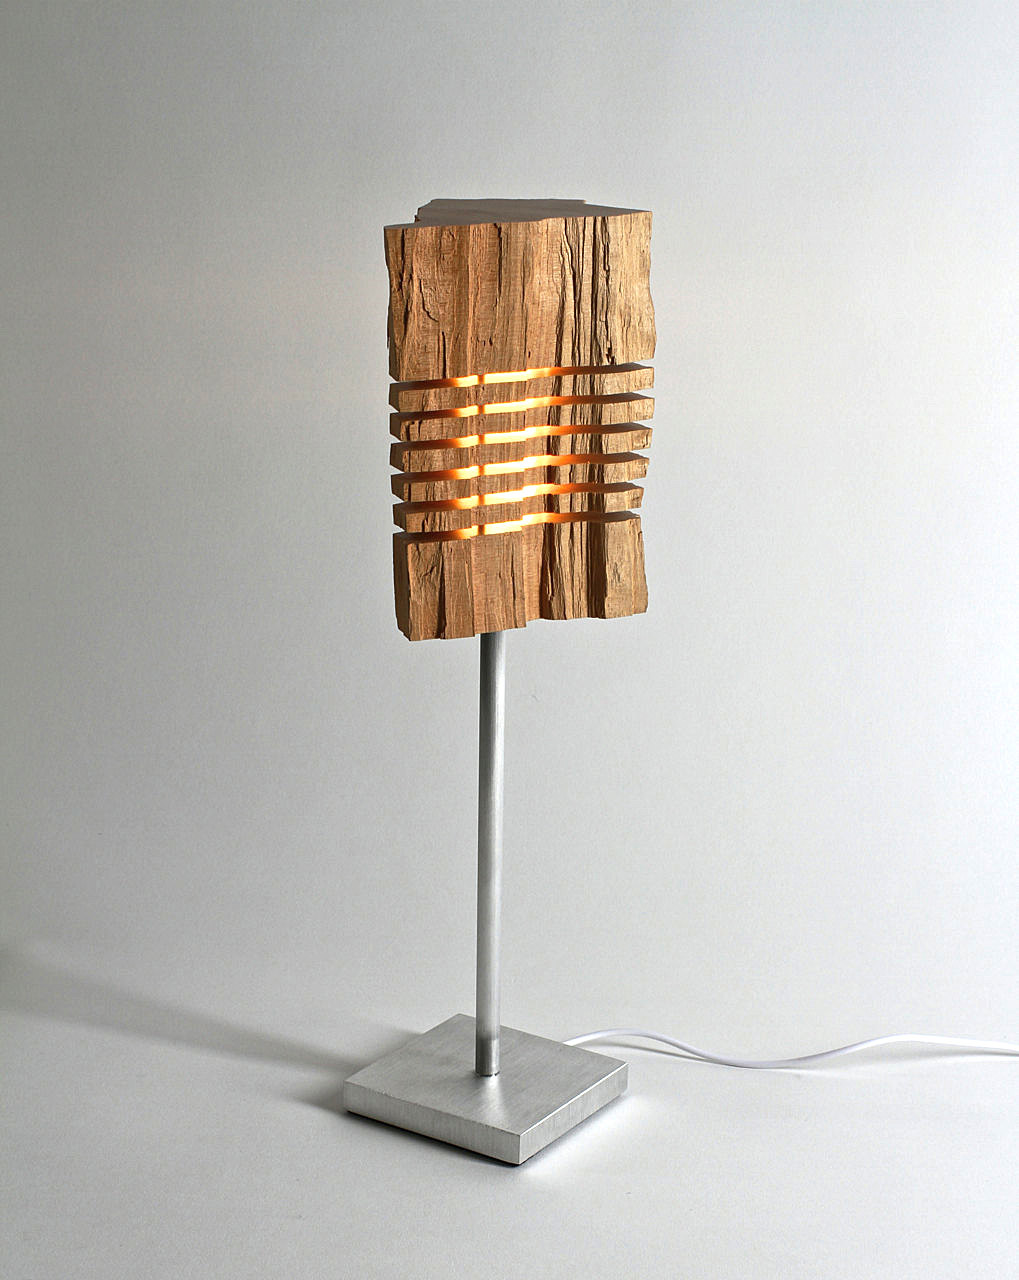 sculture-legno-illuminate-arte-minimalista-paul-foeckler-03